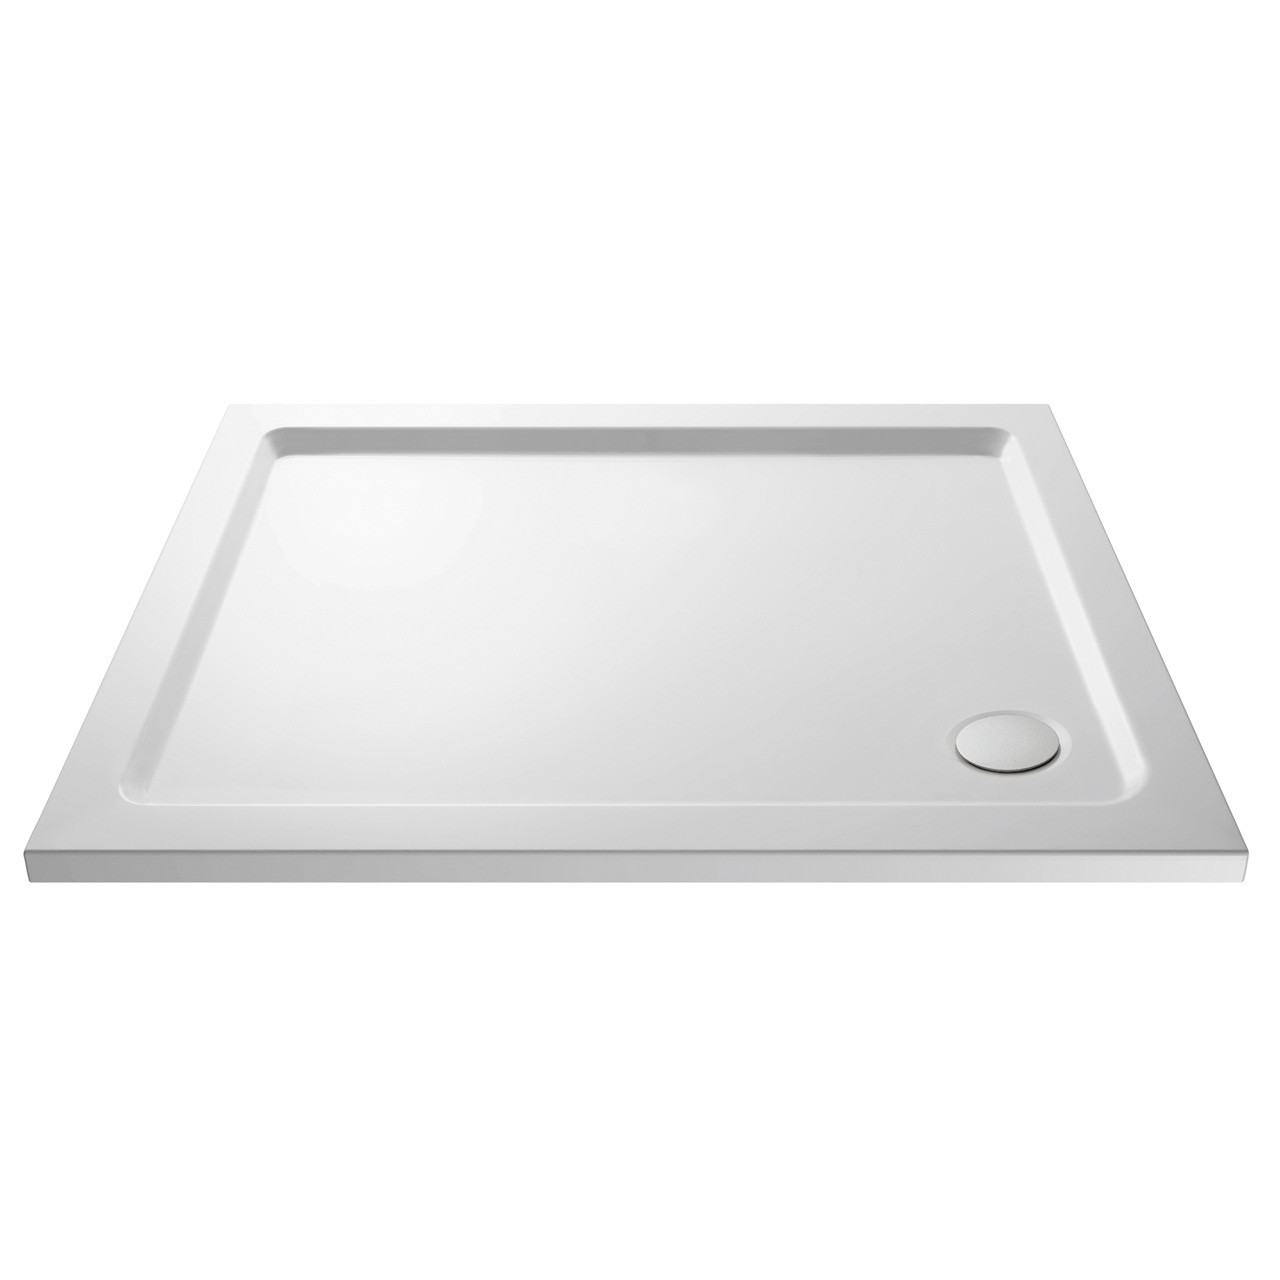 Nuie Pearlstone 1100mm x 760mm Rectangular Shower Tray with Corner Waste - NTP017